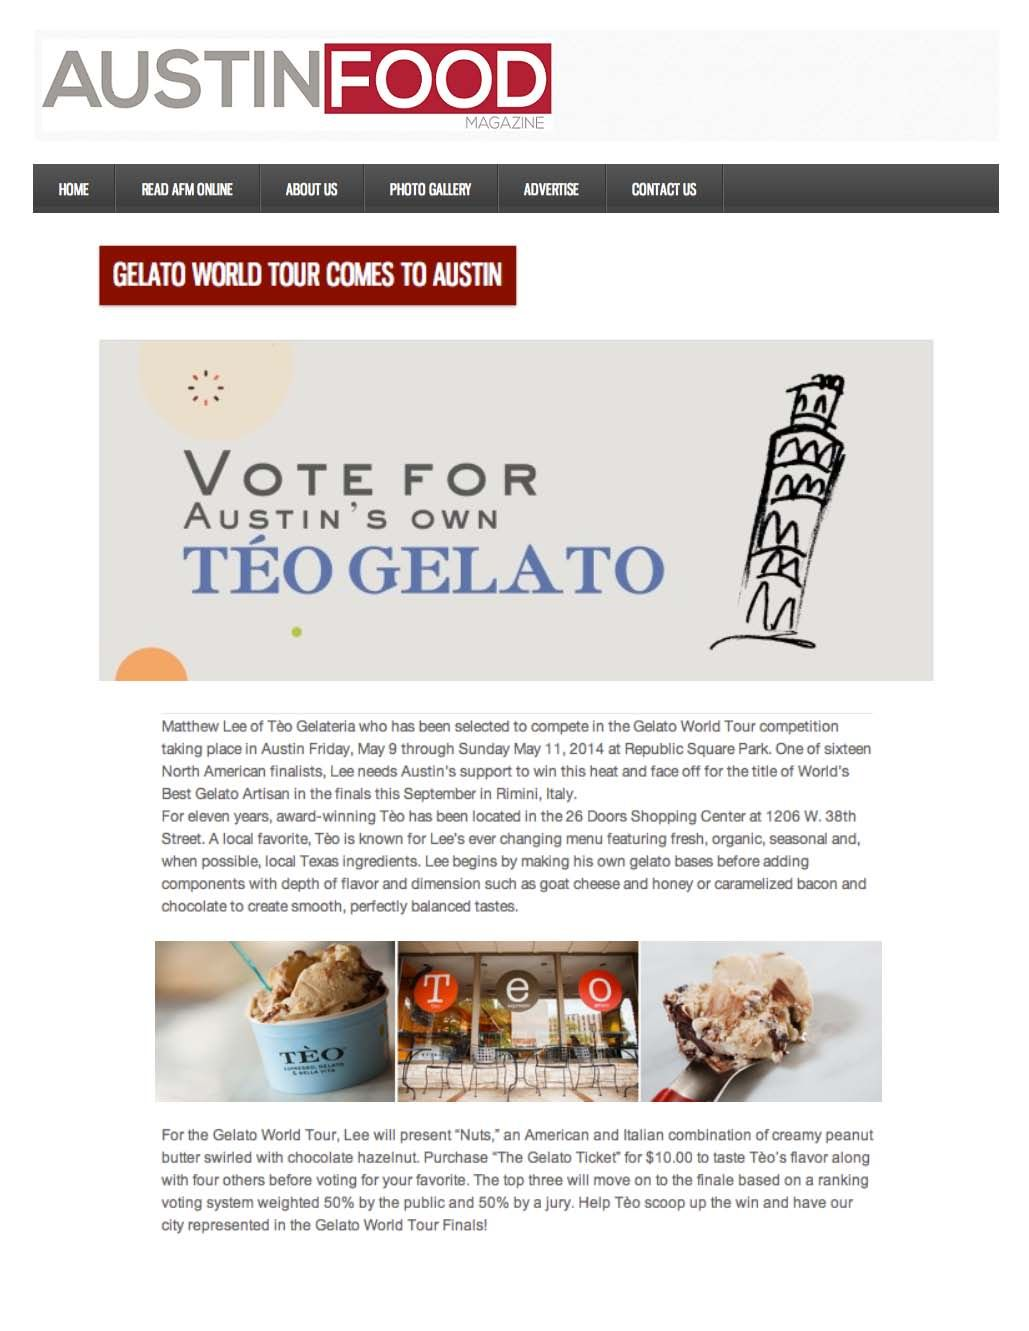 Austin Food Magazine Teo Gelato World Tour 5.9.14_Page_1.jpg